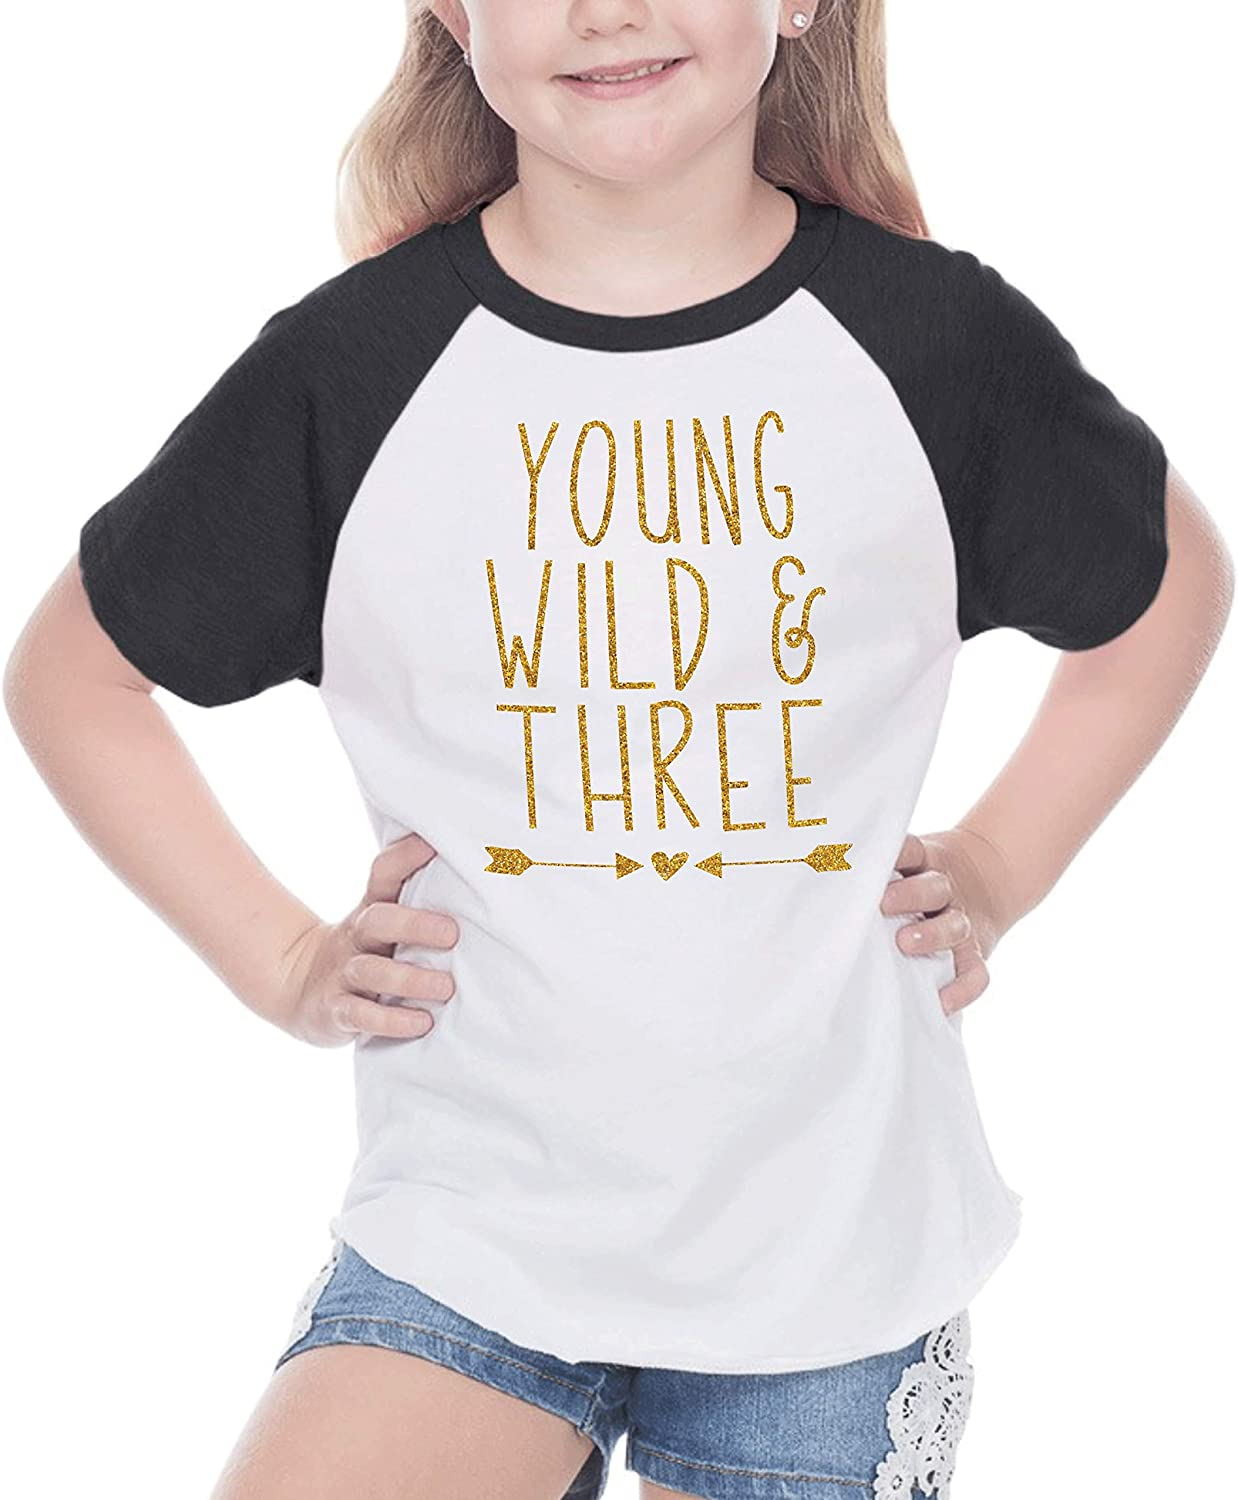 Three Year Old Birthday Girl Tank Top Bump and Beyond Designs Girl 3rd Birthday Outfit